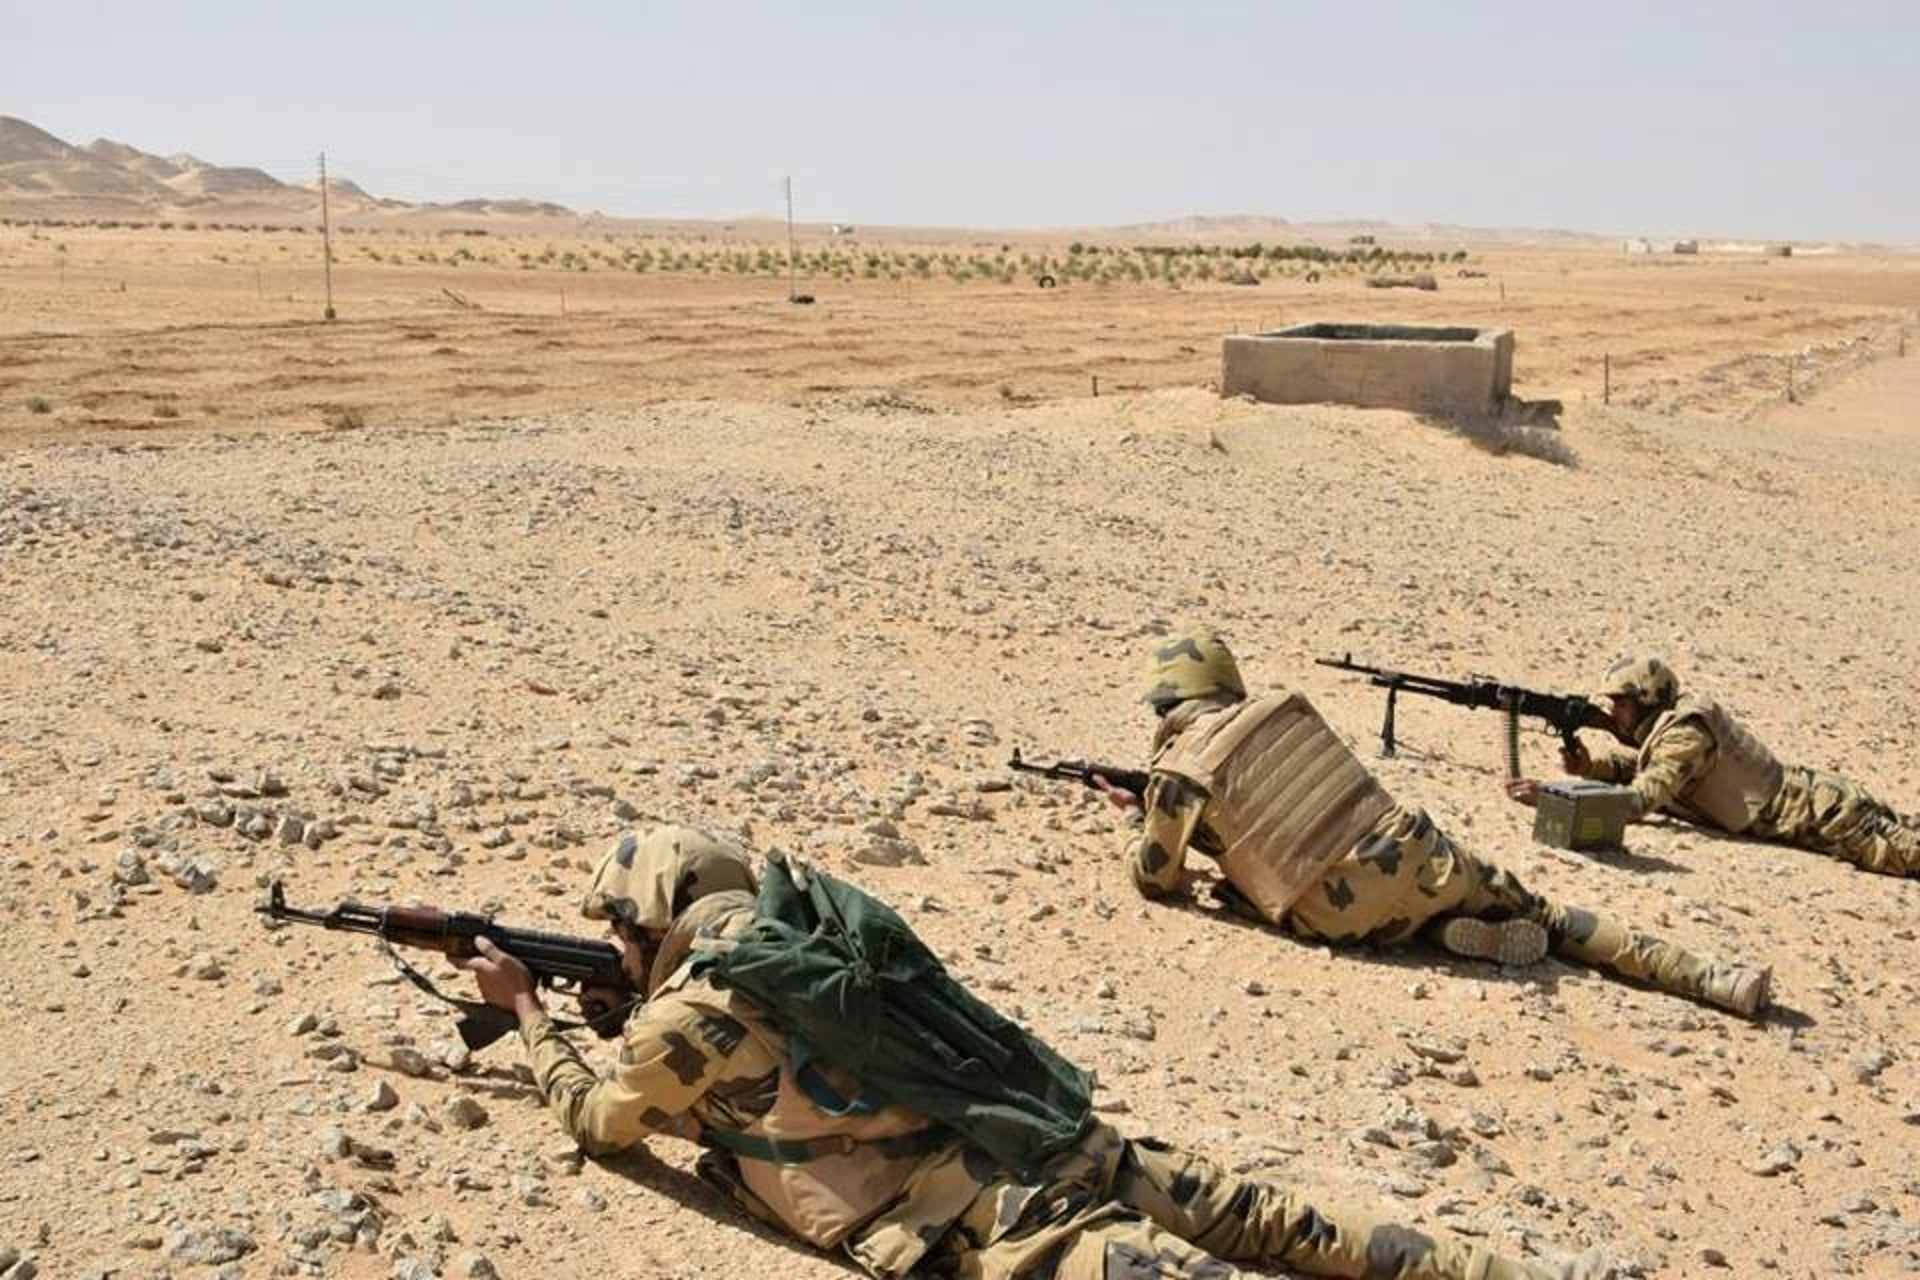 Egyptian Army soldiers are seen in the troubled northern part of the Sinai peninsula during a launch of a major assault against militants, in Al Arish, Egypt, in 2018.